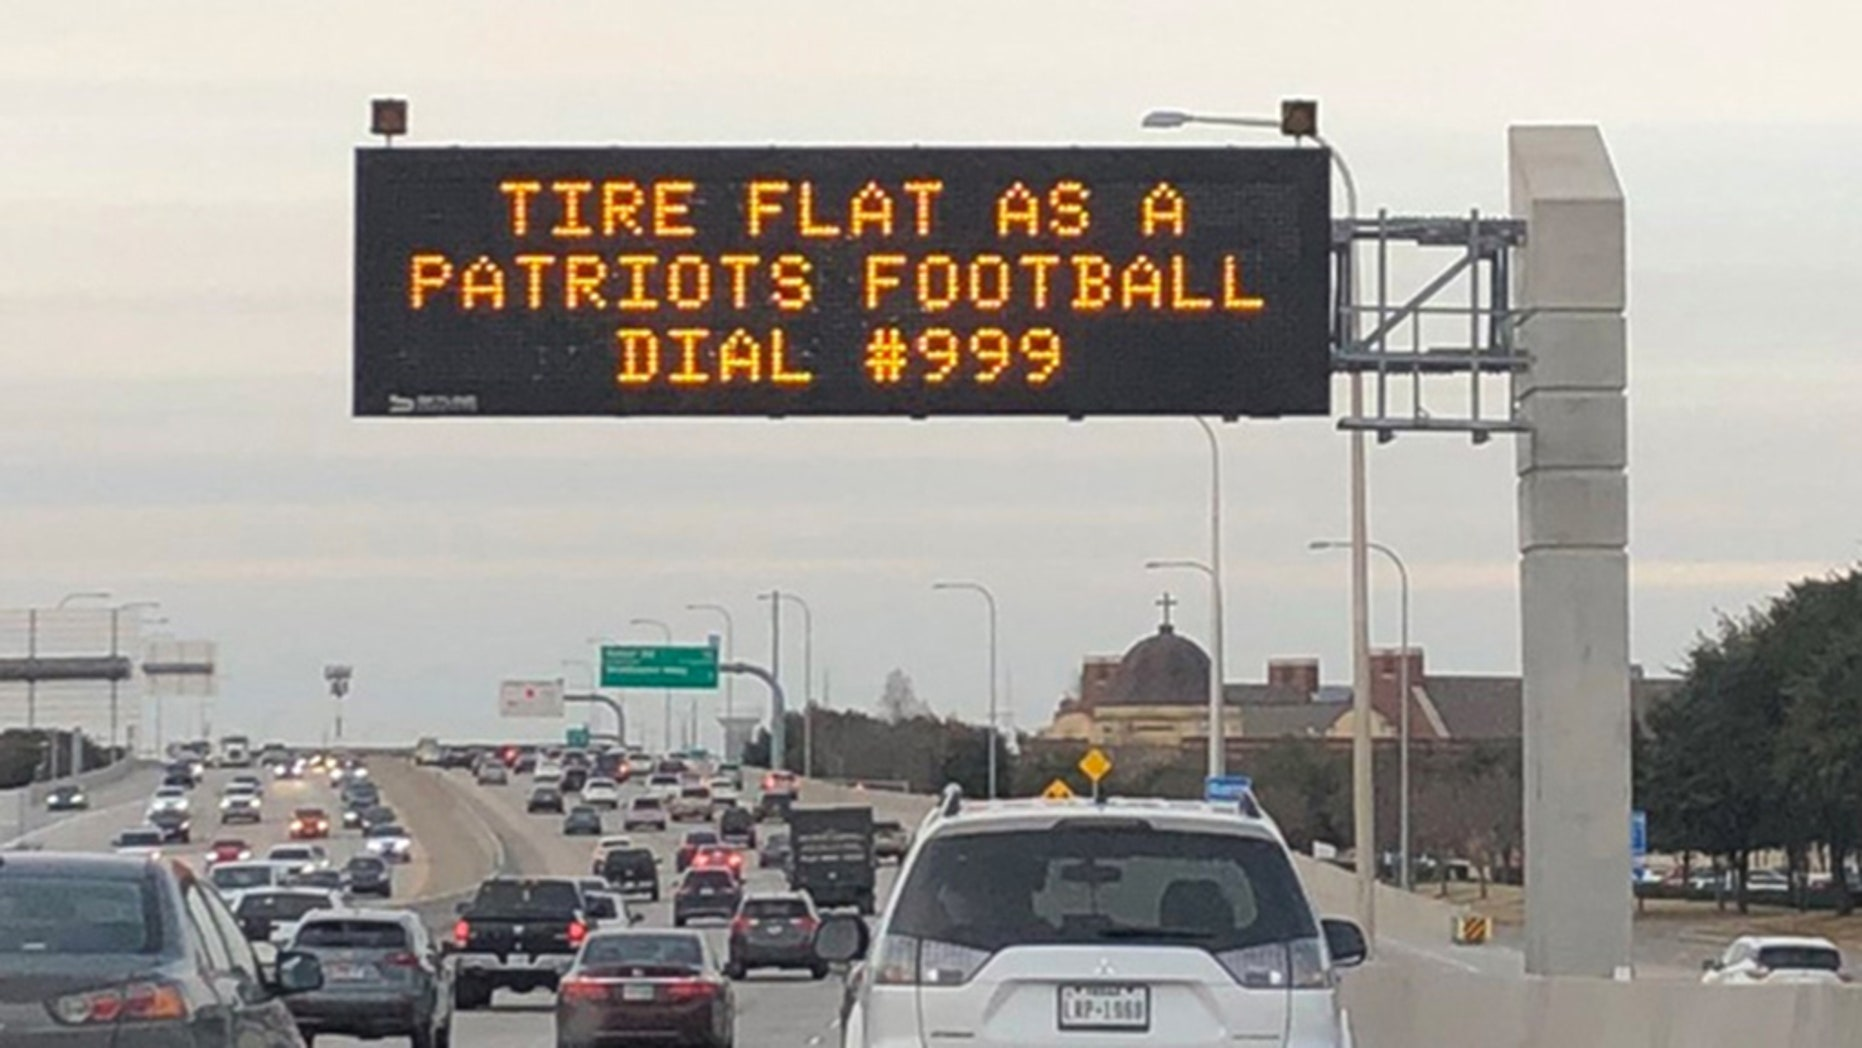 The New England Patriots were apparently the butt of a joke posted on a Texas roadway sign ahead of next week's Super Bowl.